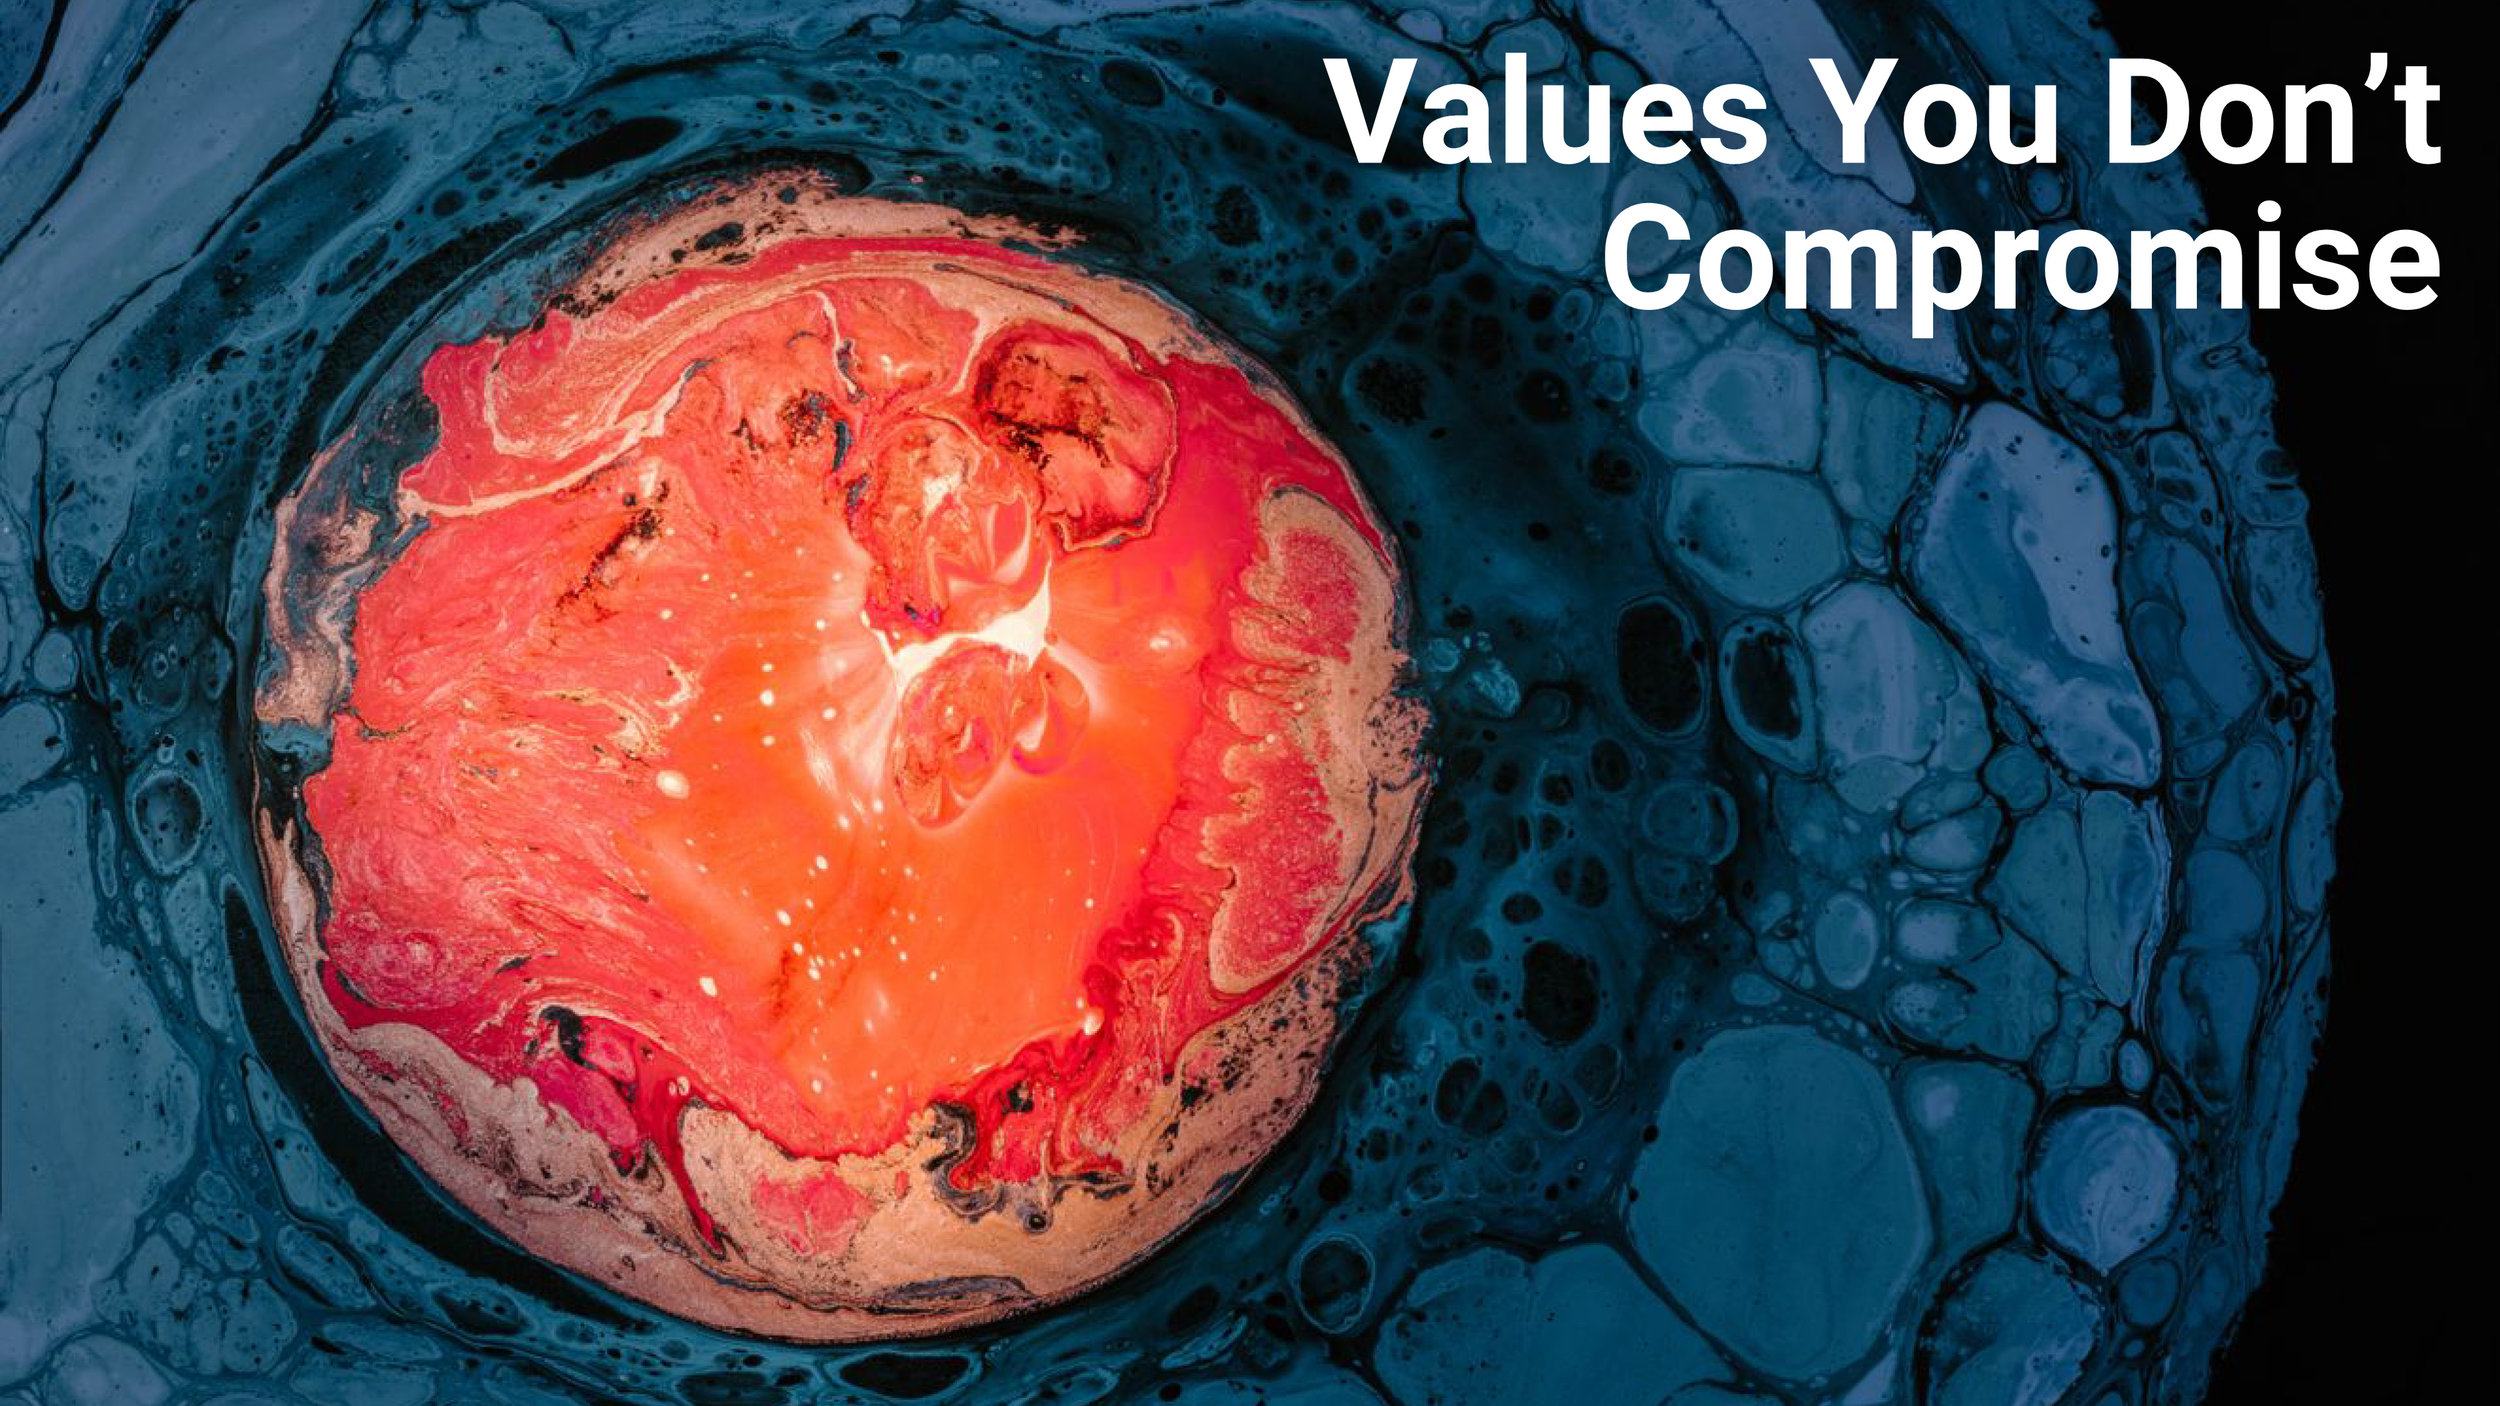 096_Establishing your Core Values_Shared Principles_Page_8.jpg